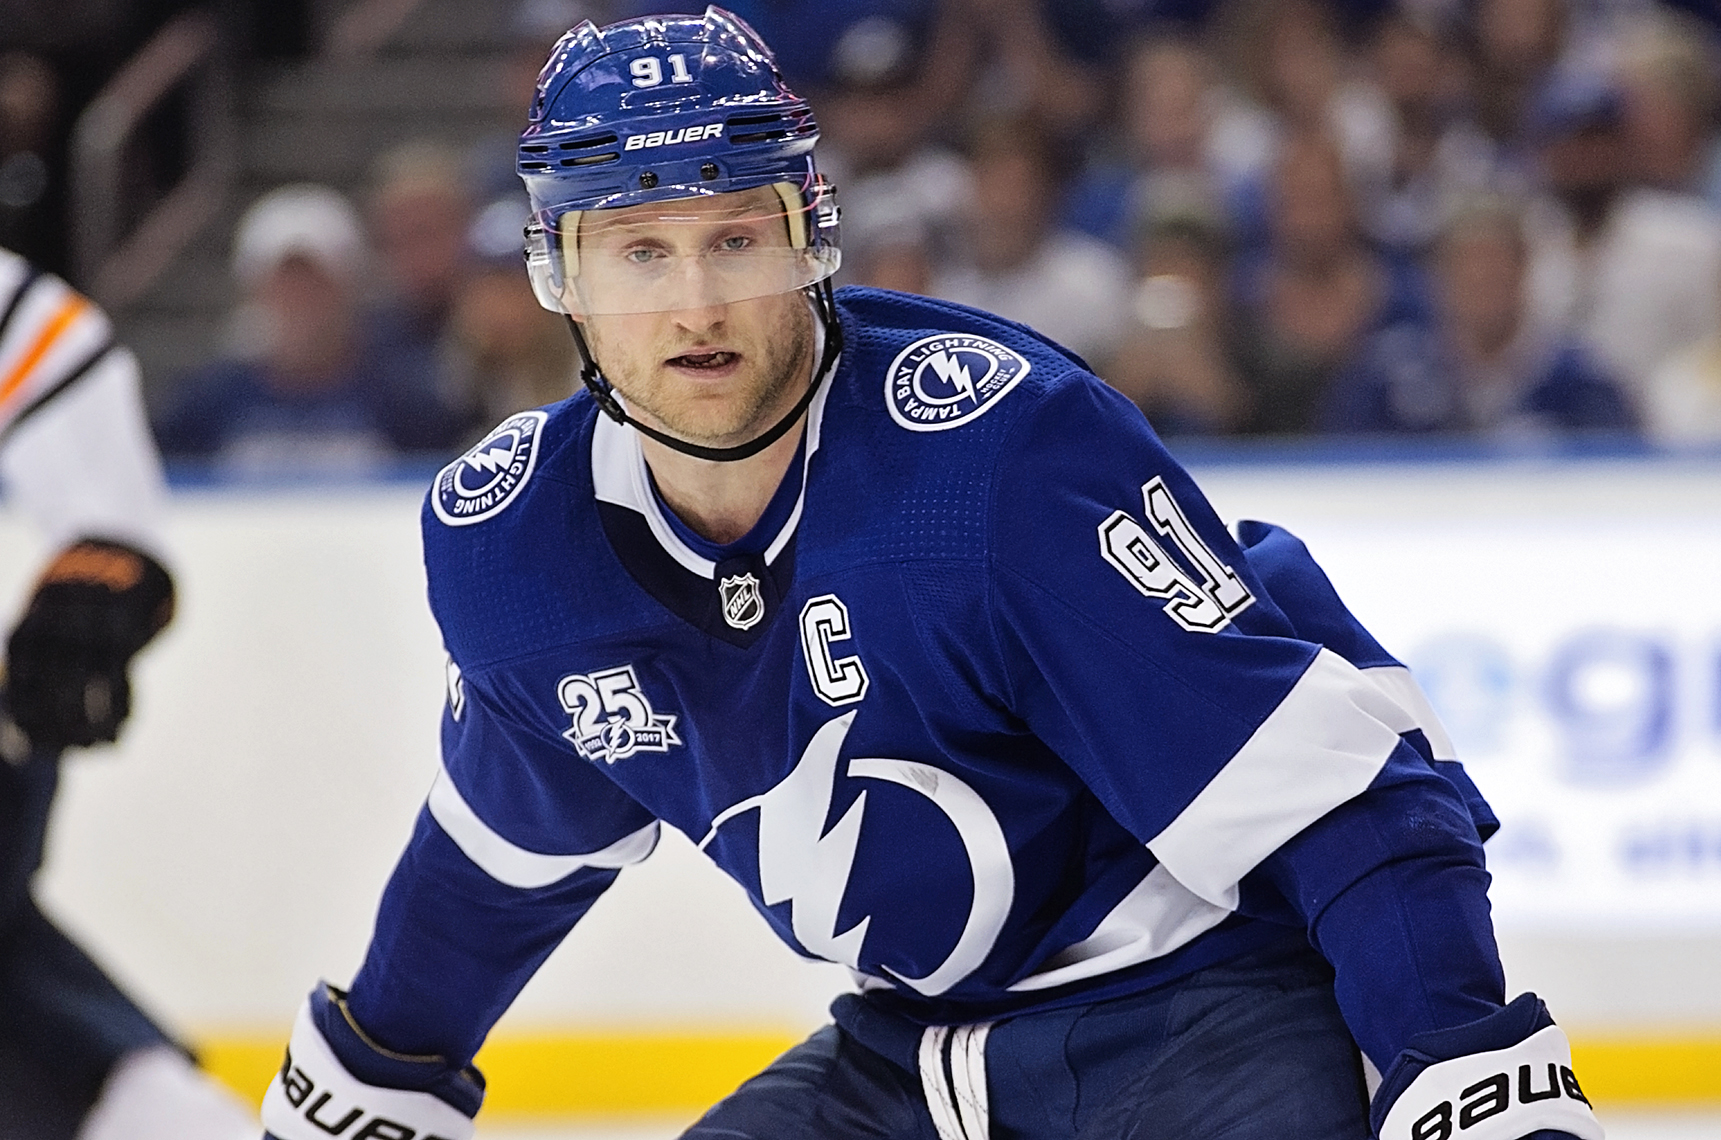 Stamkos had two assists on the night./CARMEN MANDATO